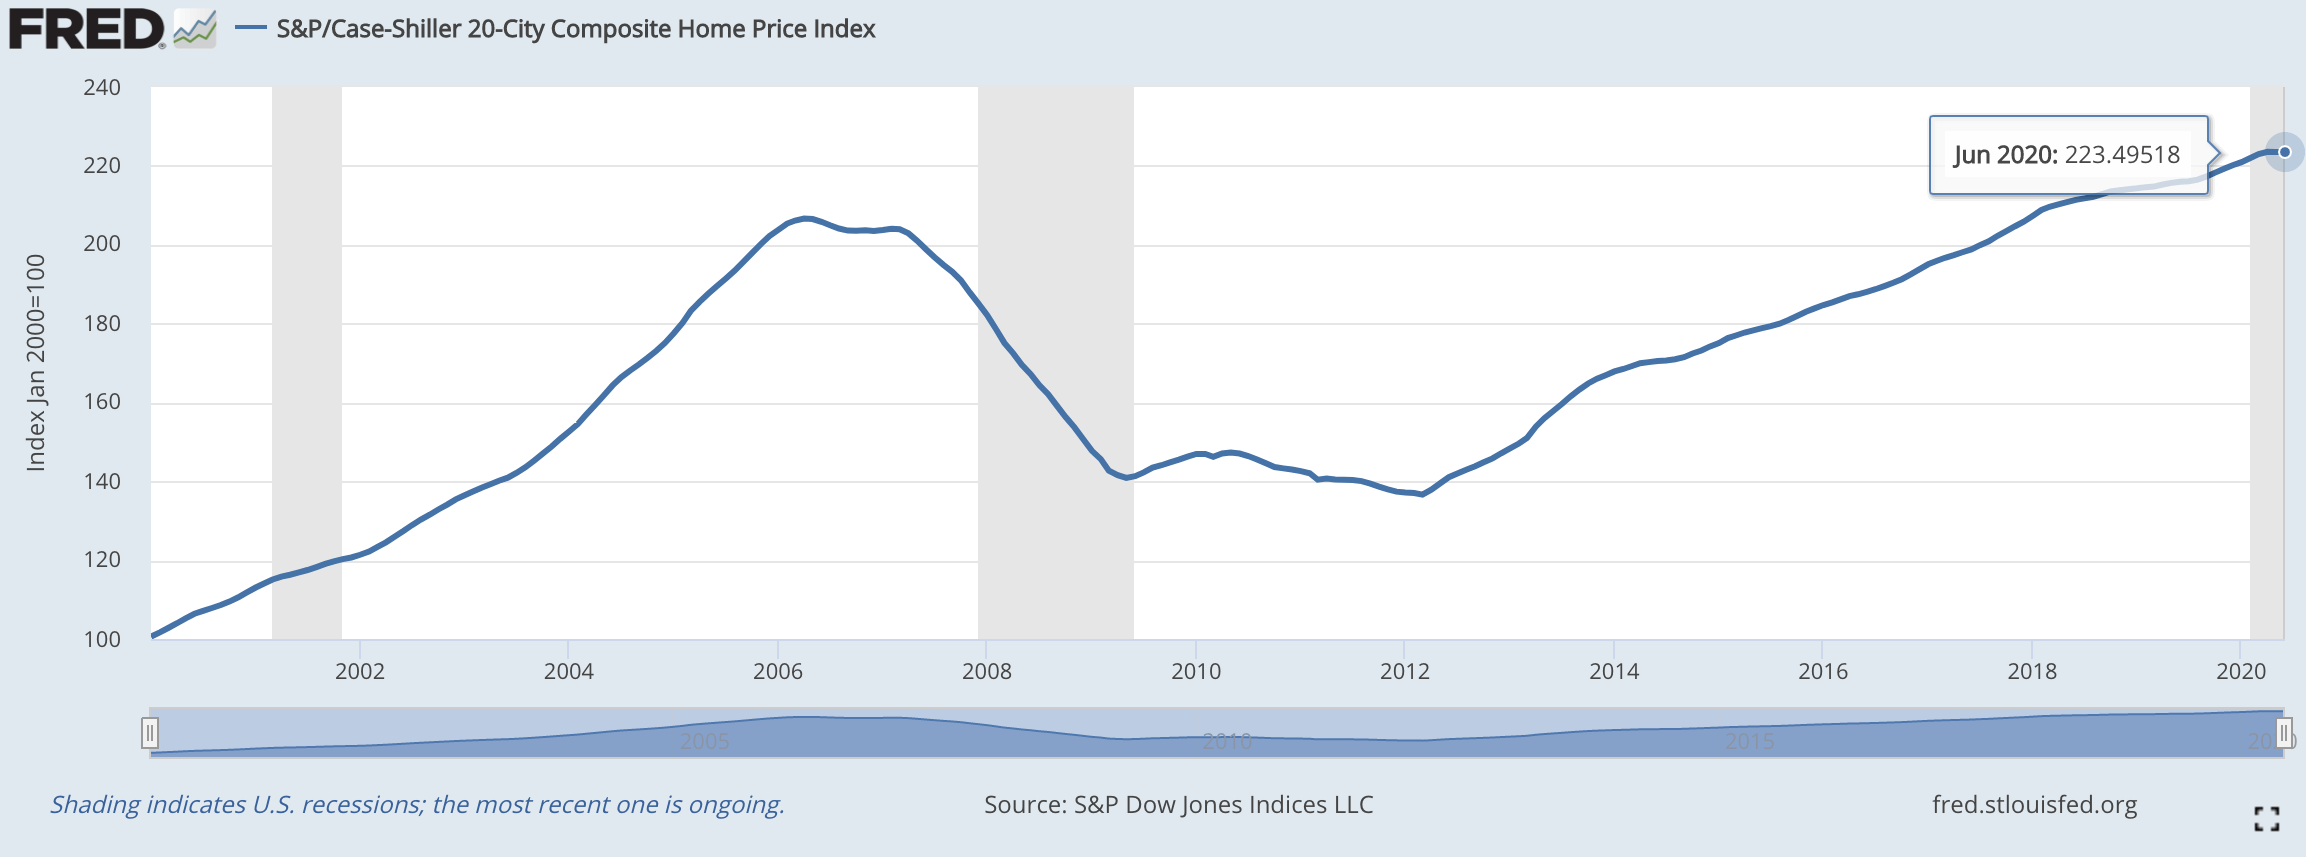 S&P/Case-Shiller Home Price Index